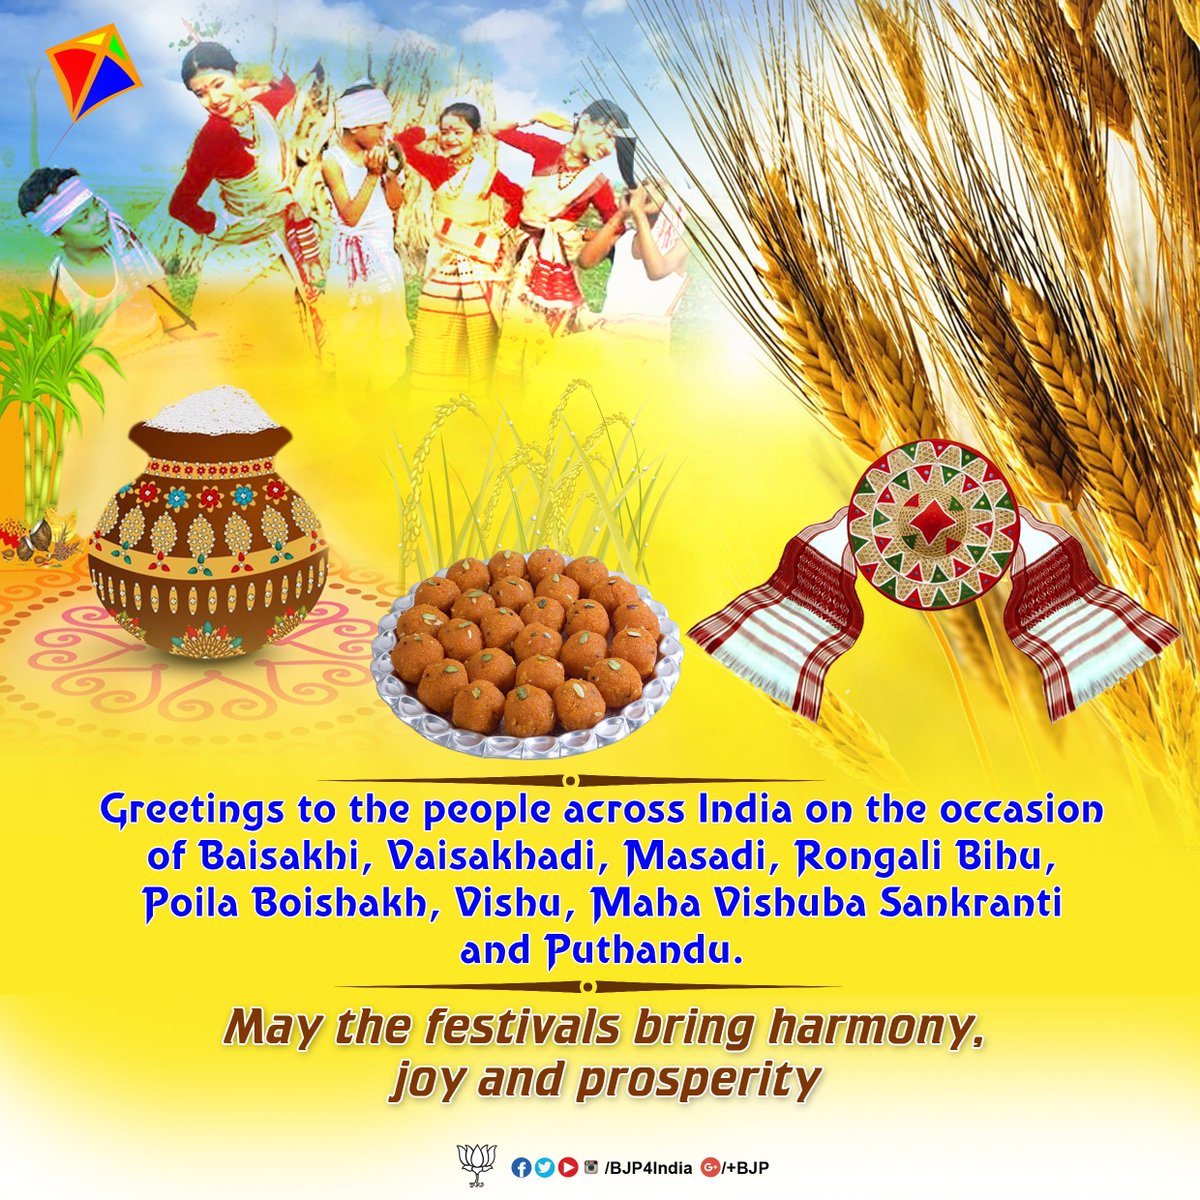 Bjp On Twitter Greetings On The Occasion Of Baisakhi Rongali Bihu